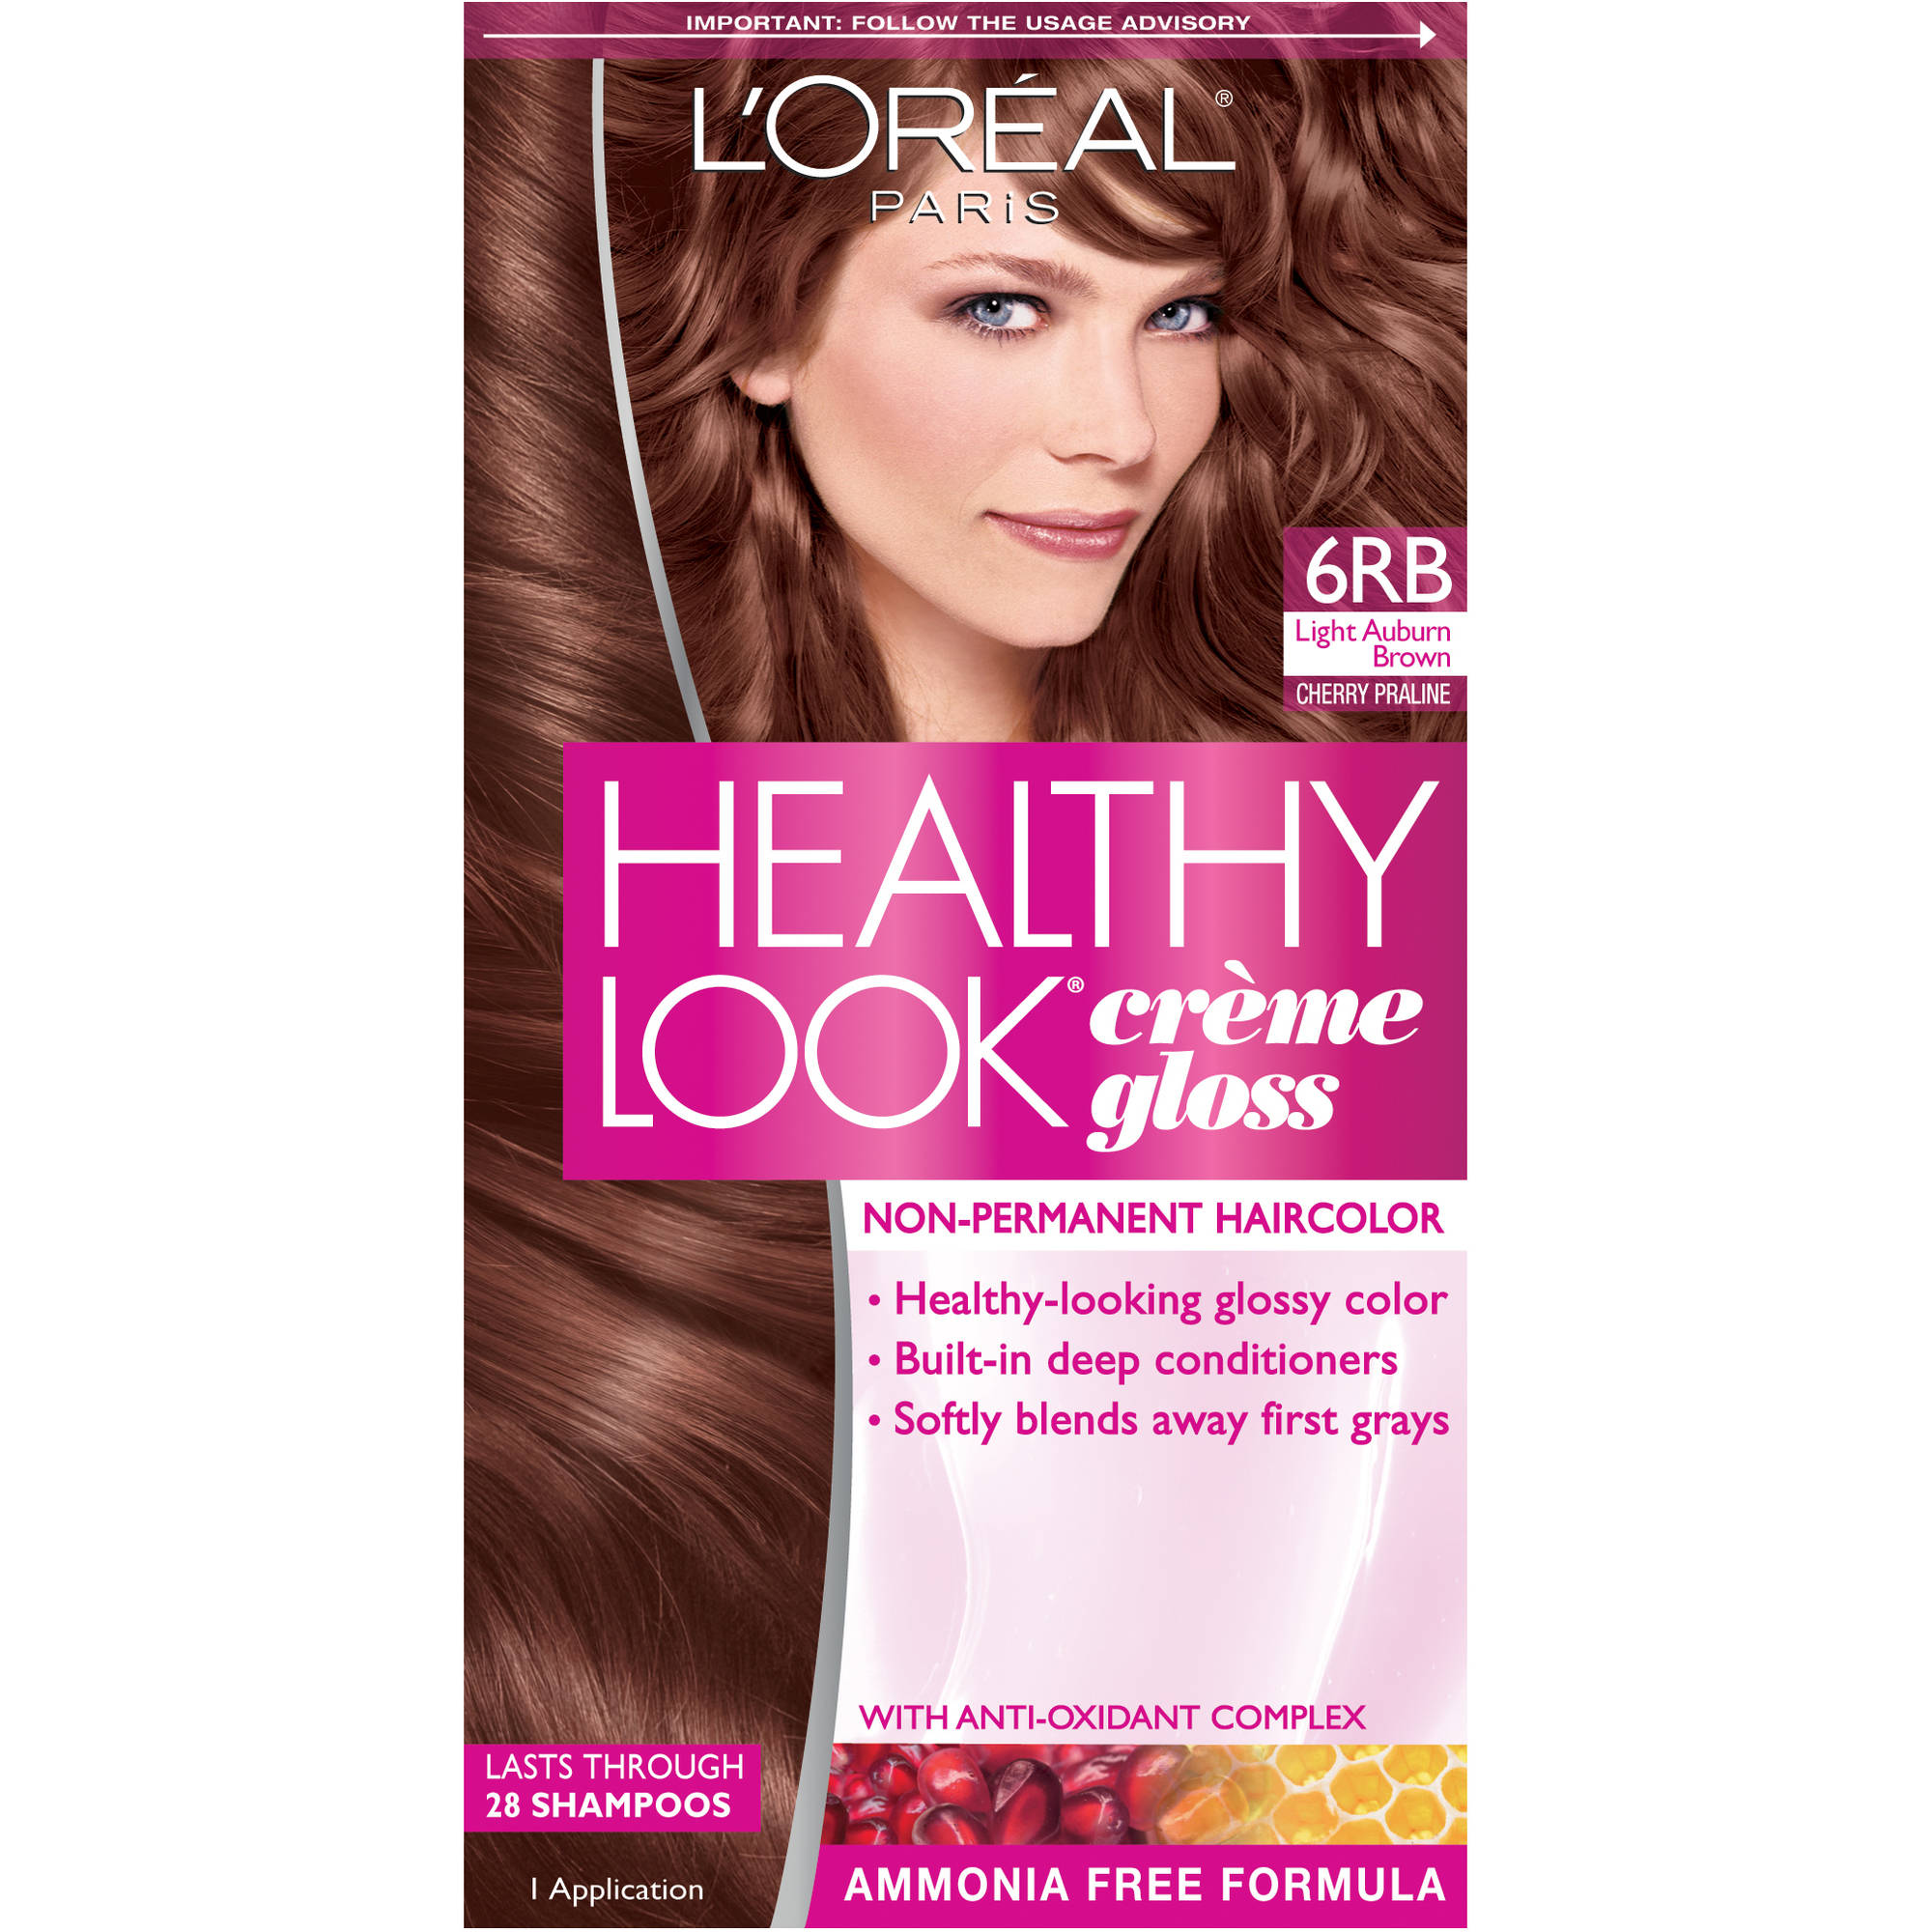 L'Oreal Paris Healthy Look Creme Gloss Hair Color, 6RB Light Auburn Brown Cherry Praline